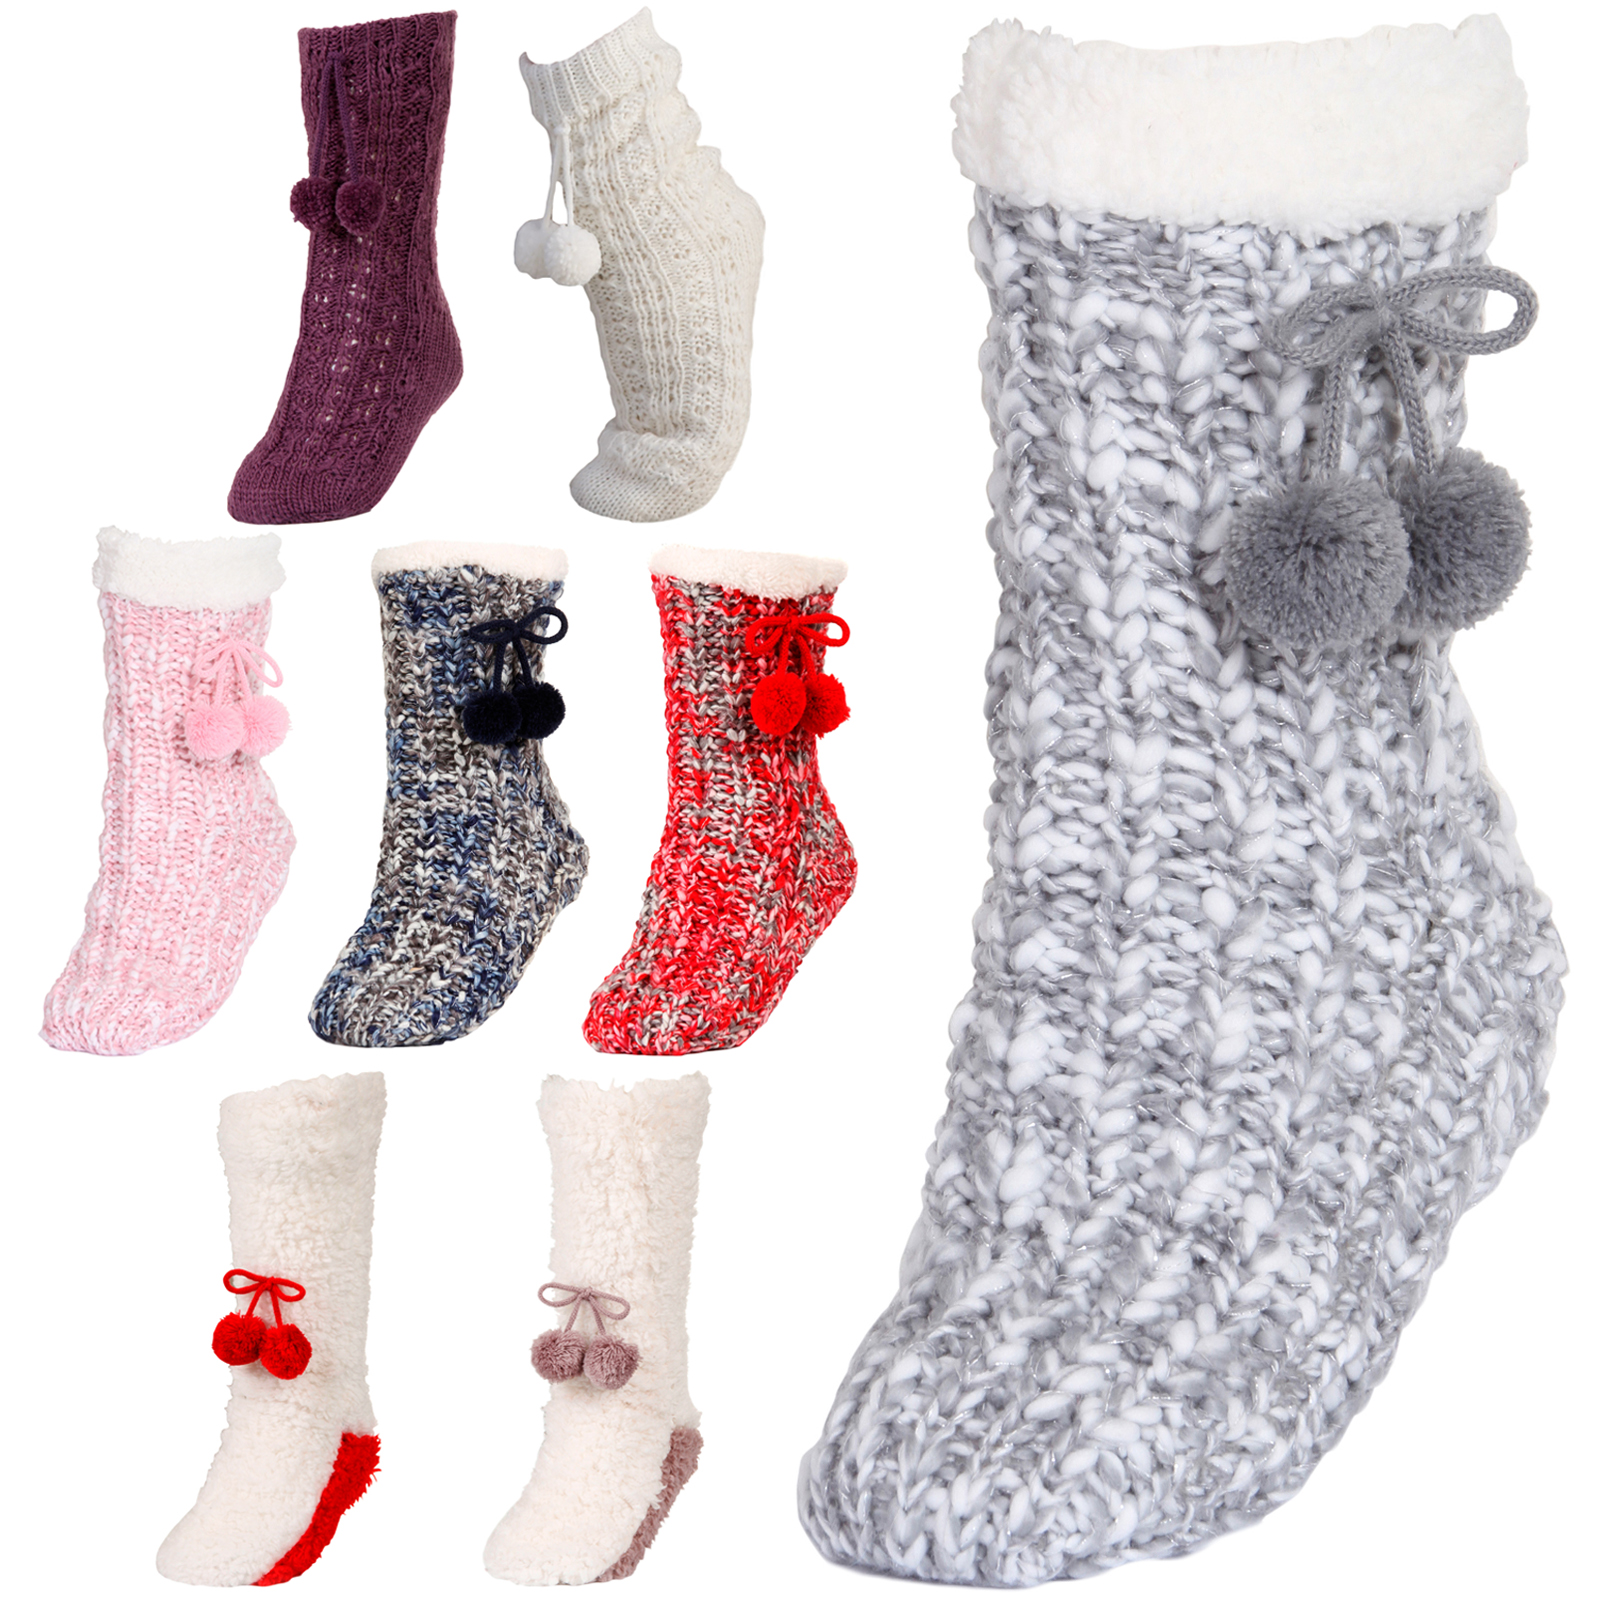 adb423a9745b8 Details about Luxury Womens Slipper Socks Knitted Sherpa Fleece Lined  Booties Xmas Gift Size